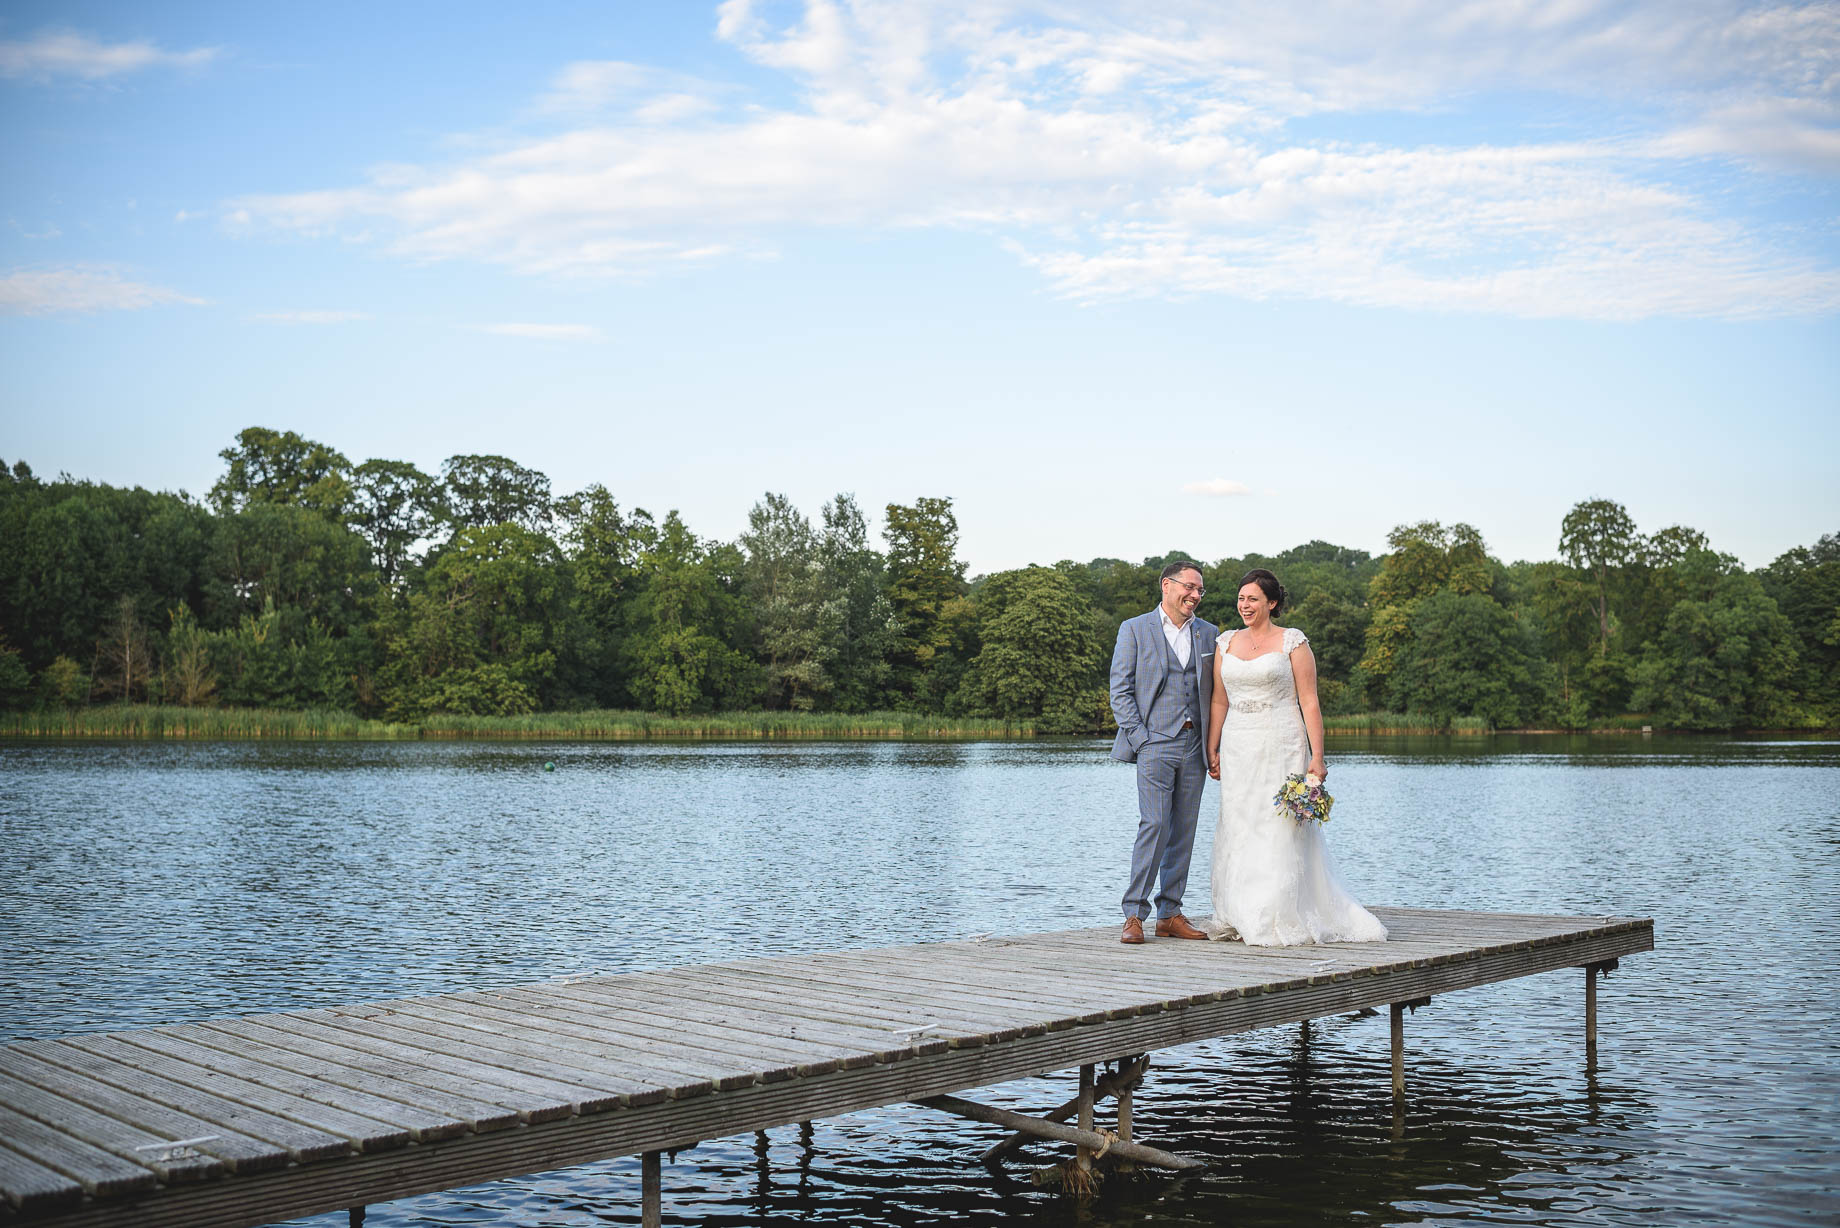 Luton Hoo wedding photography by Guy Collier Photography - Lauren and Gem (159 of 178)